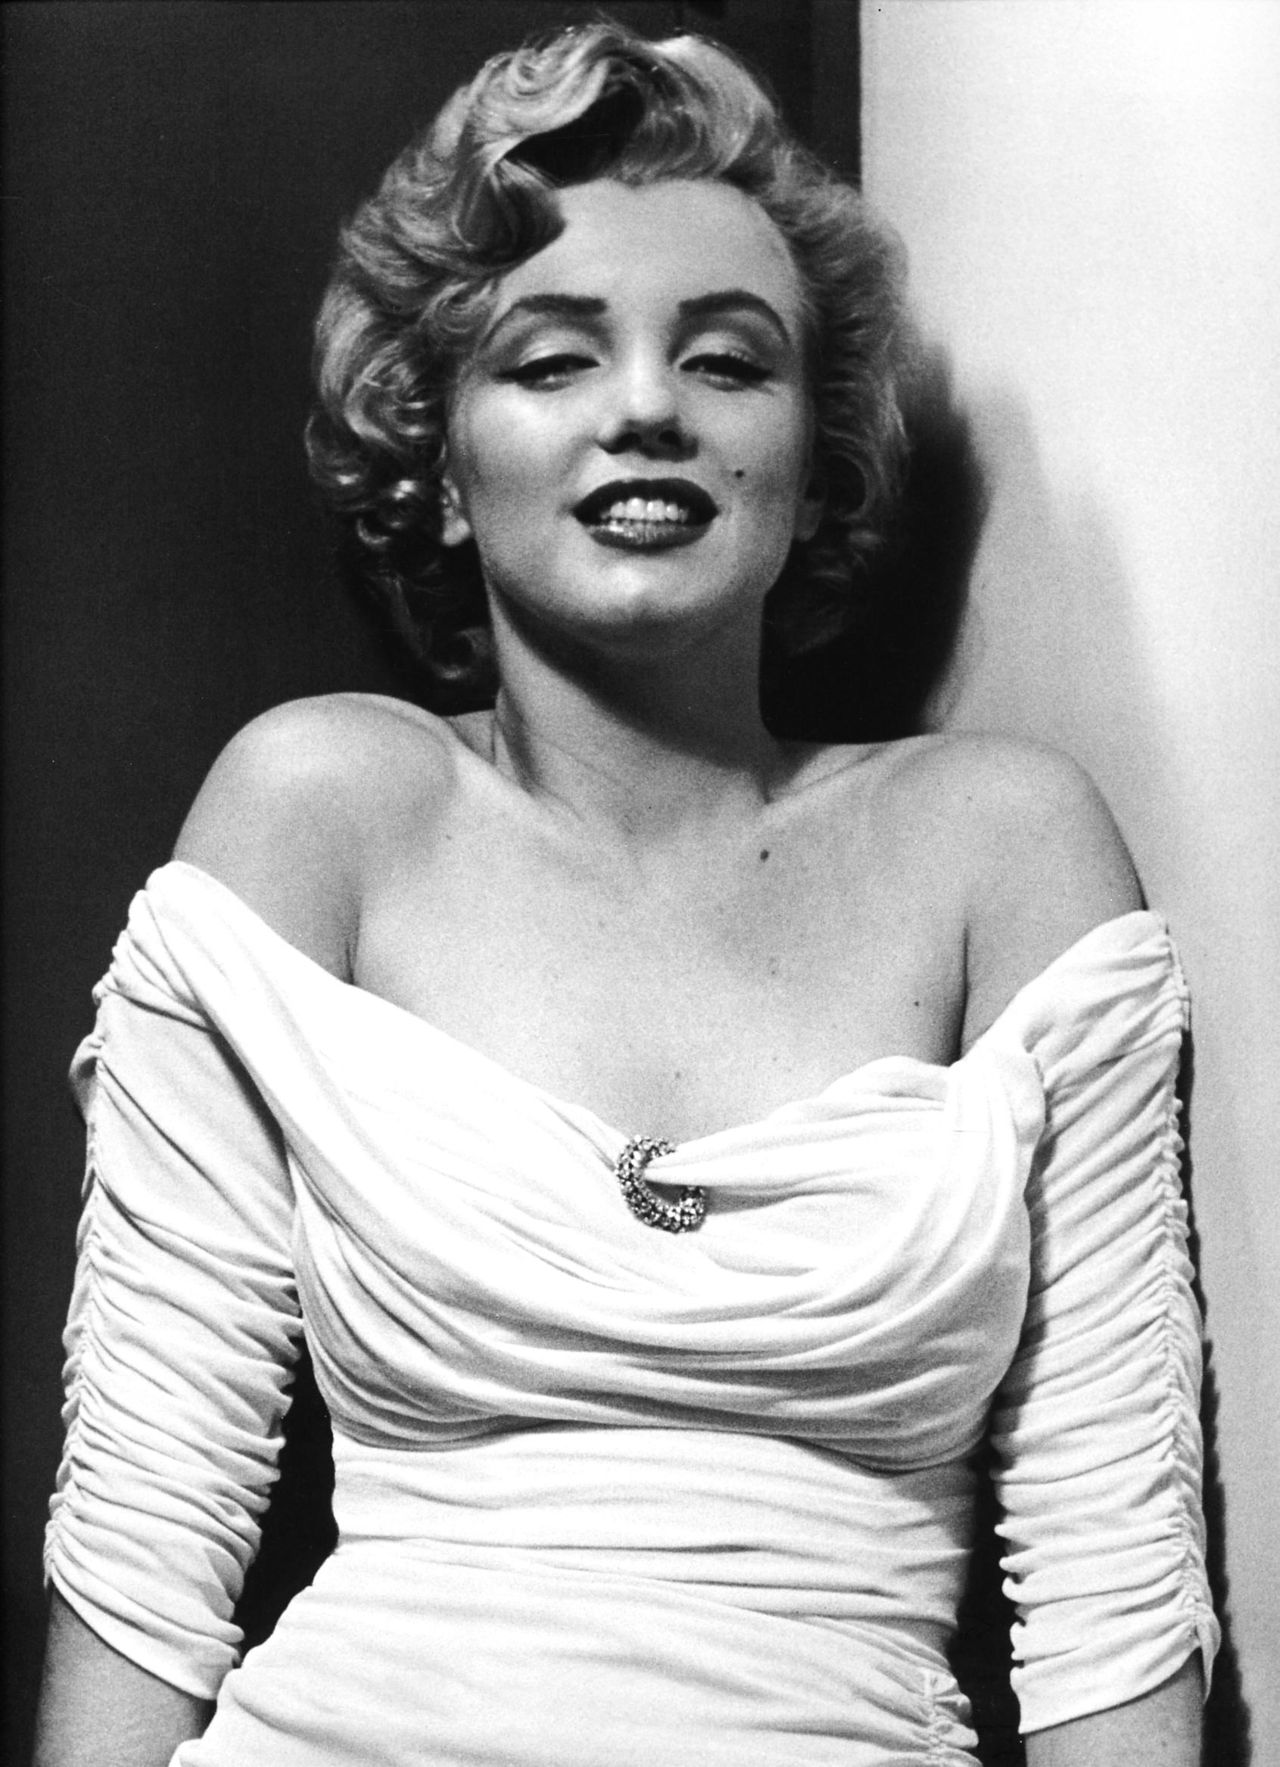 Marilyn Monroe Portrait by Philippe Halsman